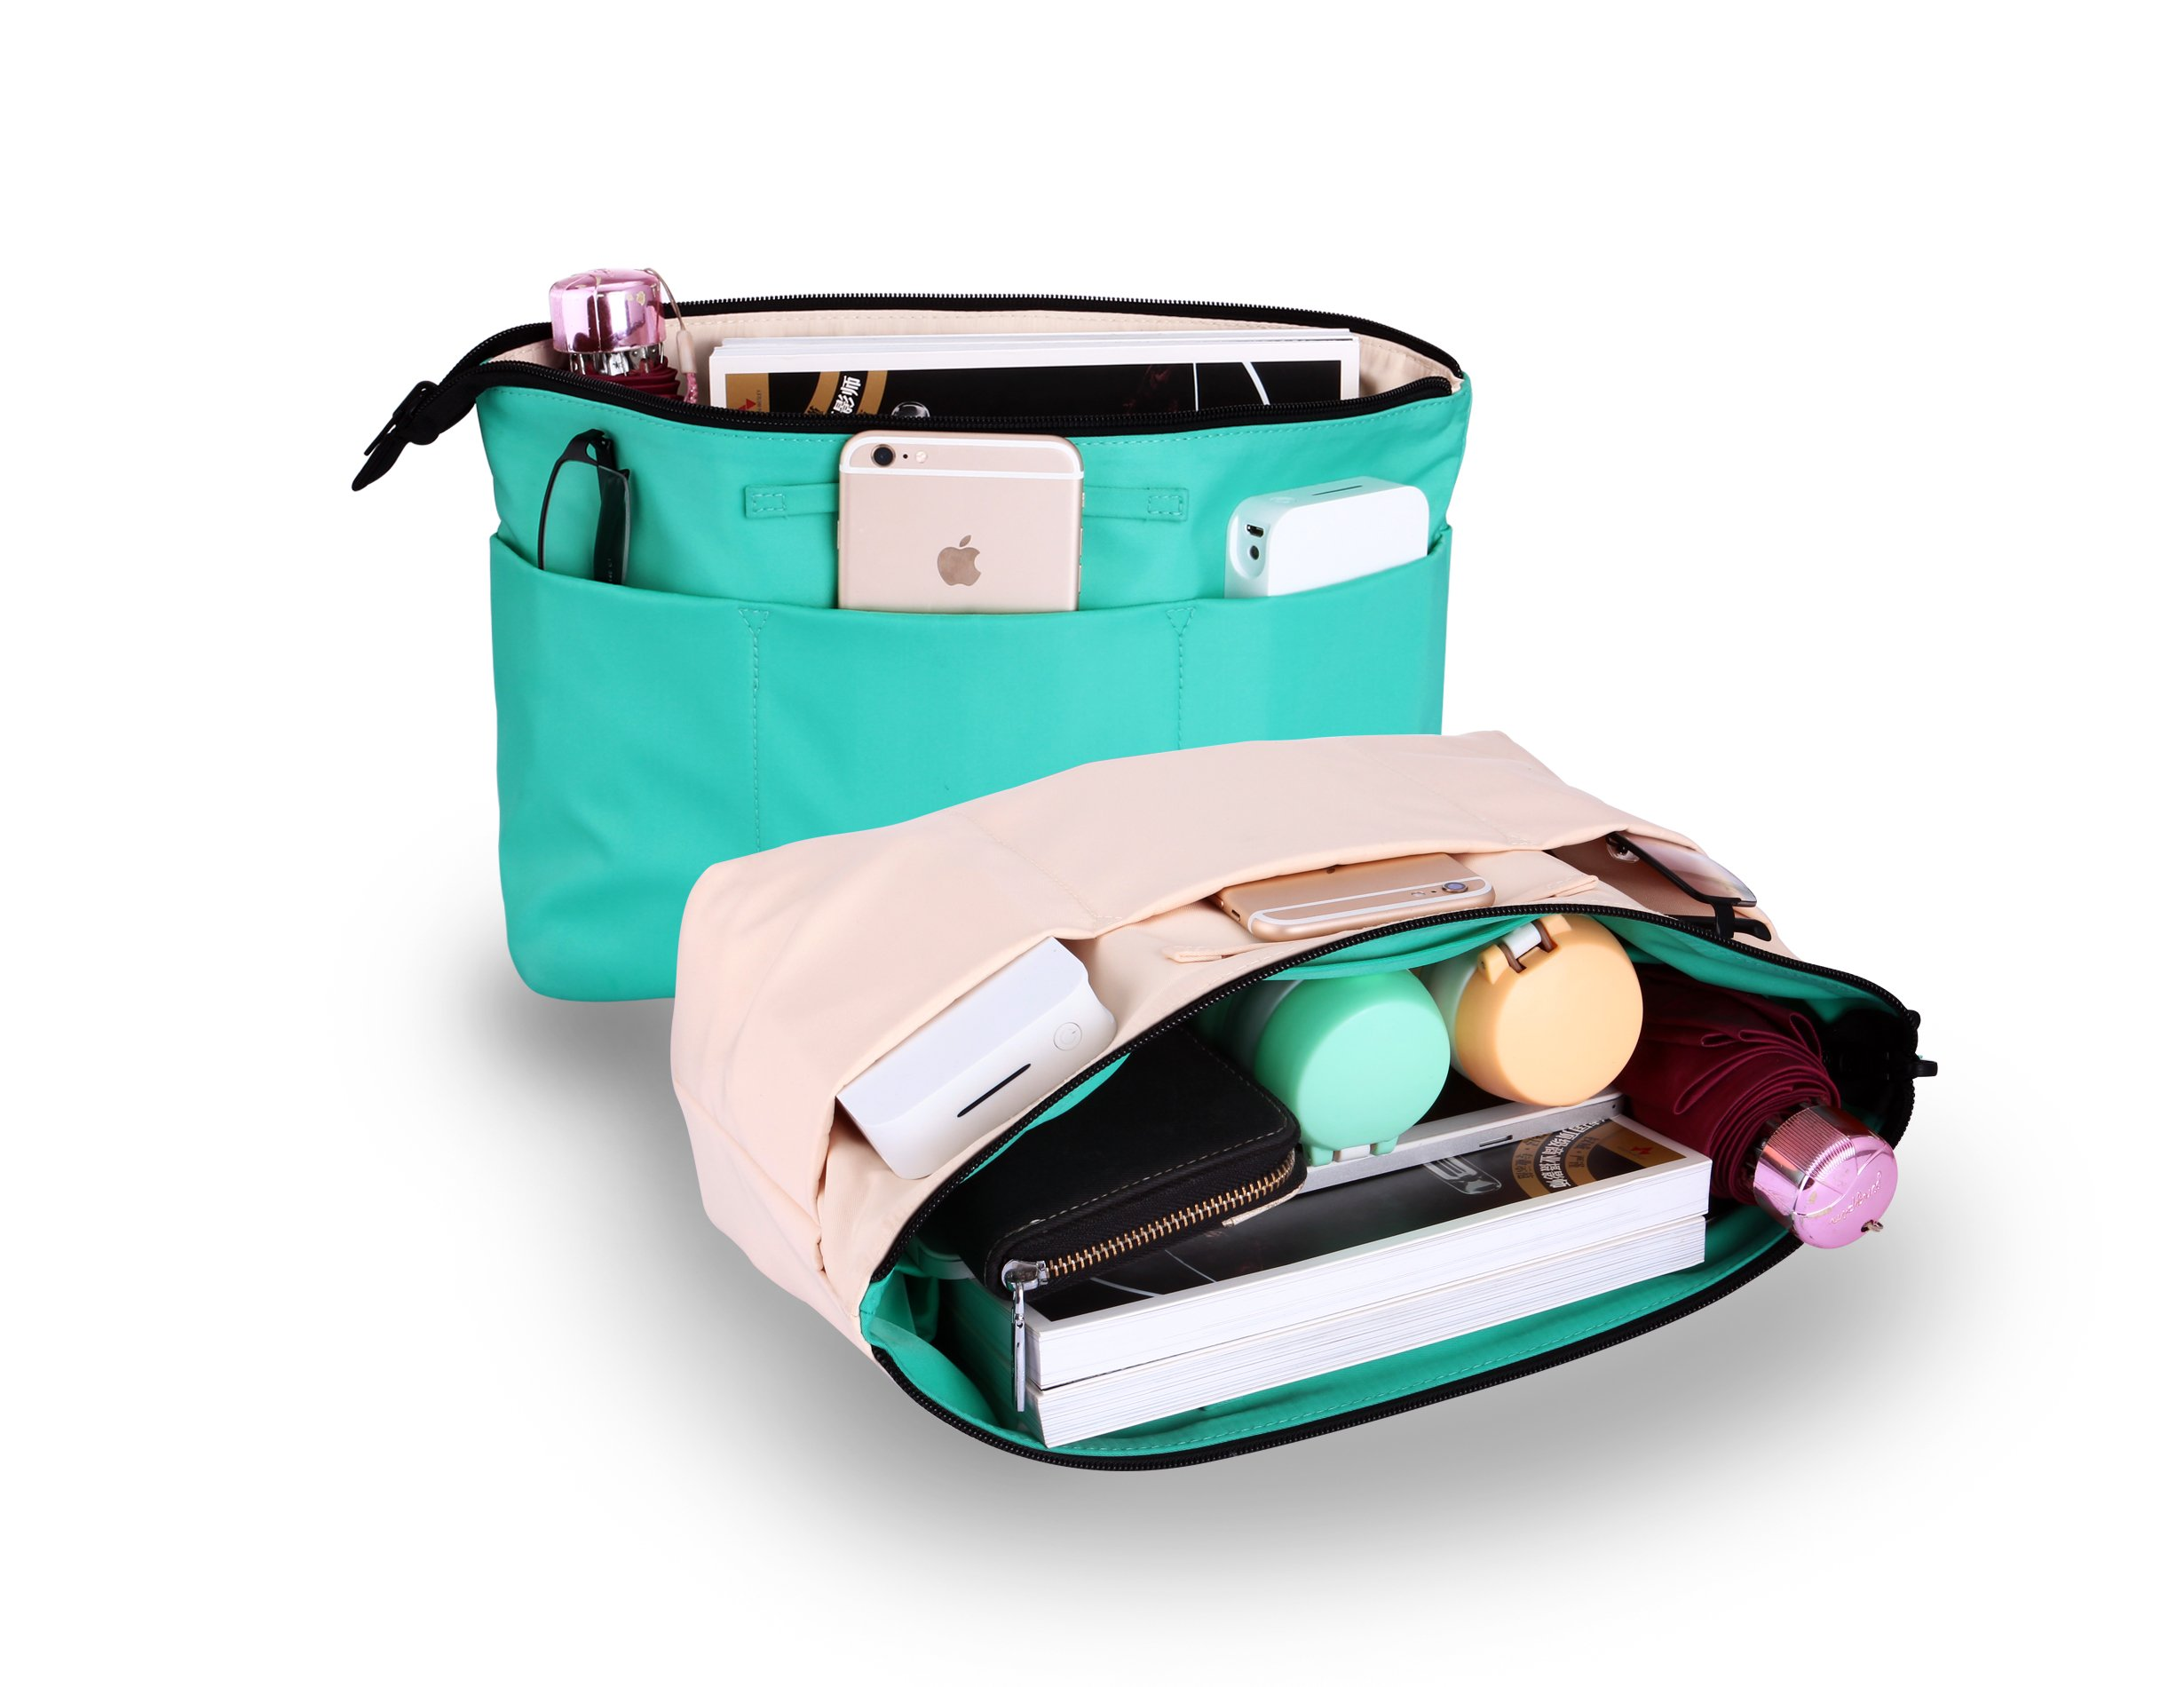 M-choice Premium Two-Side Use Handbag Organizer With YKK Zipper - Perfect Purse Organizer to Keep Everything Neat & in Style Color Green